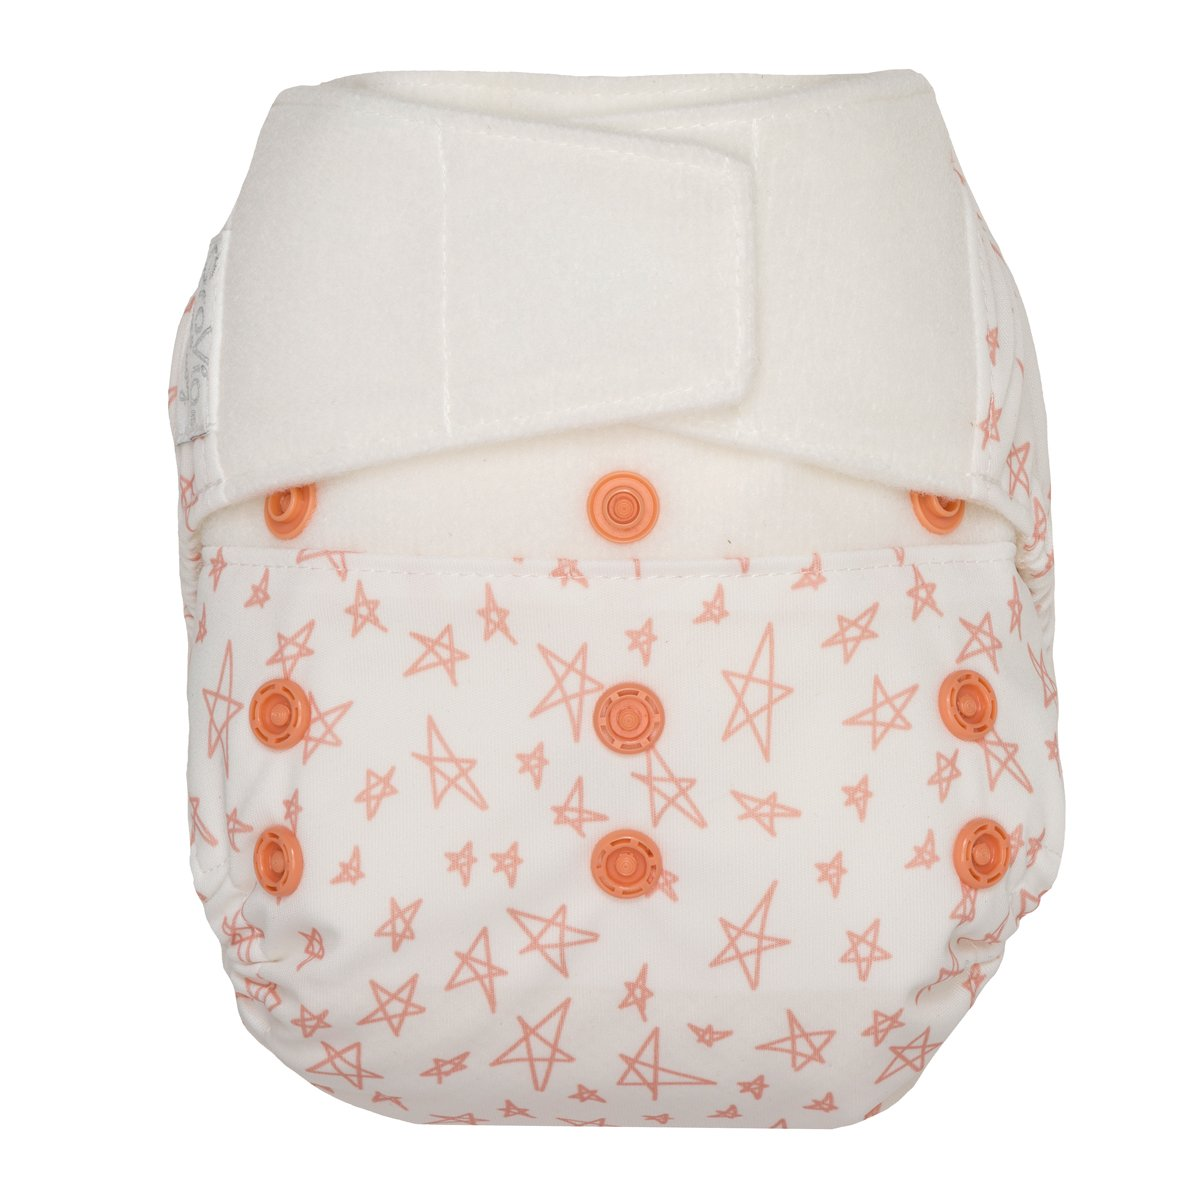 GroVia One Size Cloth Diaper Shell Set -  Grapefruit Stars